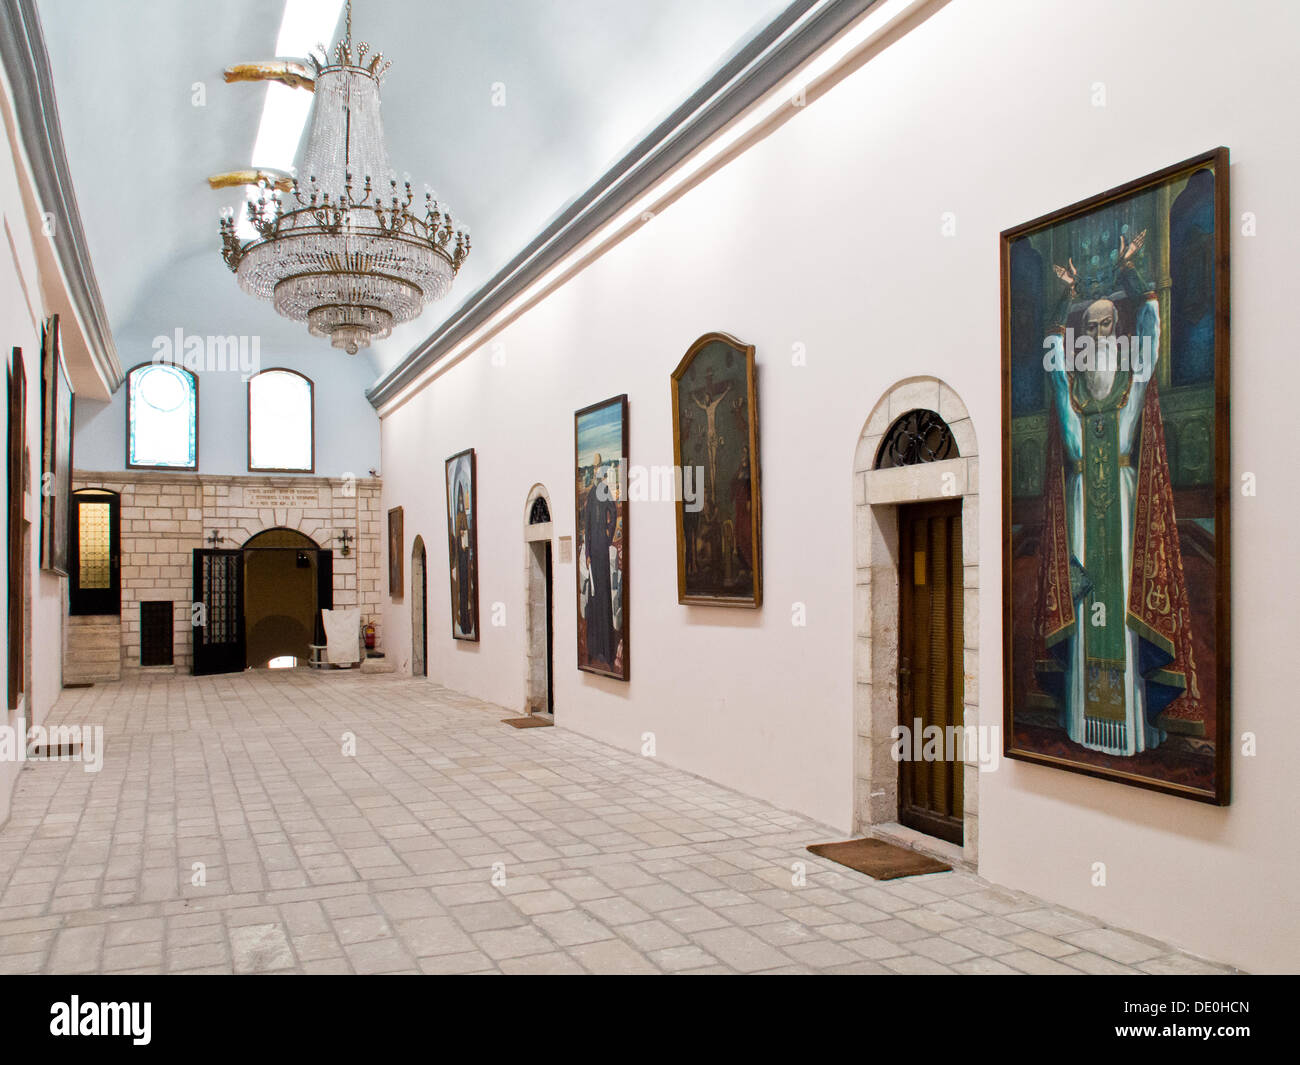 The hall leading to the residence of the Armenian Patriarch at the Cathedral of St. James in Jerusalem. Although legislation describes Israel as a 'Jewish' state it also provides for freedom of worship which is respected in practice. - Stock Image